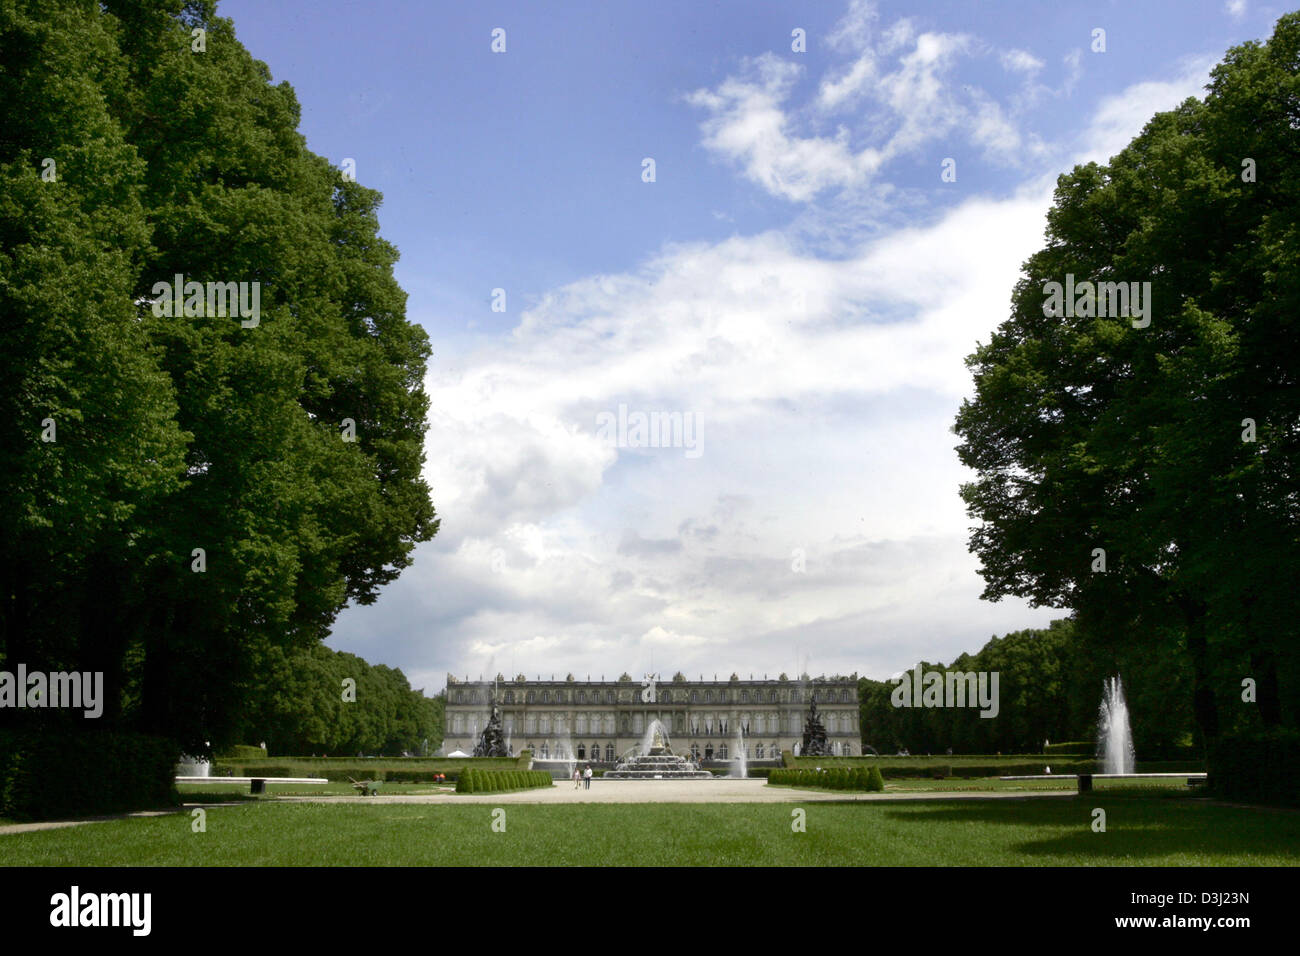 (dpa) - A view of the park and Chateau Herrenchiemsee on Herreninsel island in the Lake  Chiemsee in Herrenchiemsee, - Stock Image